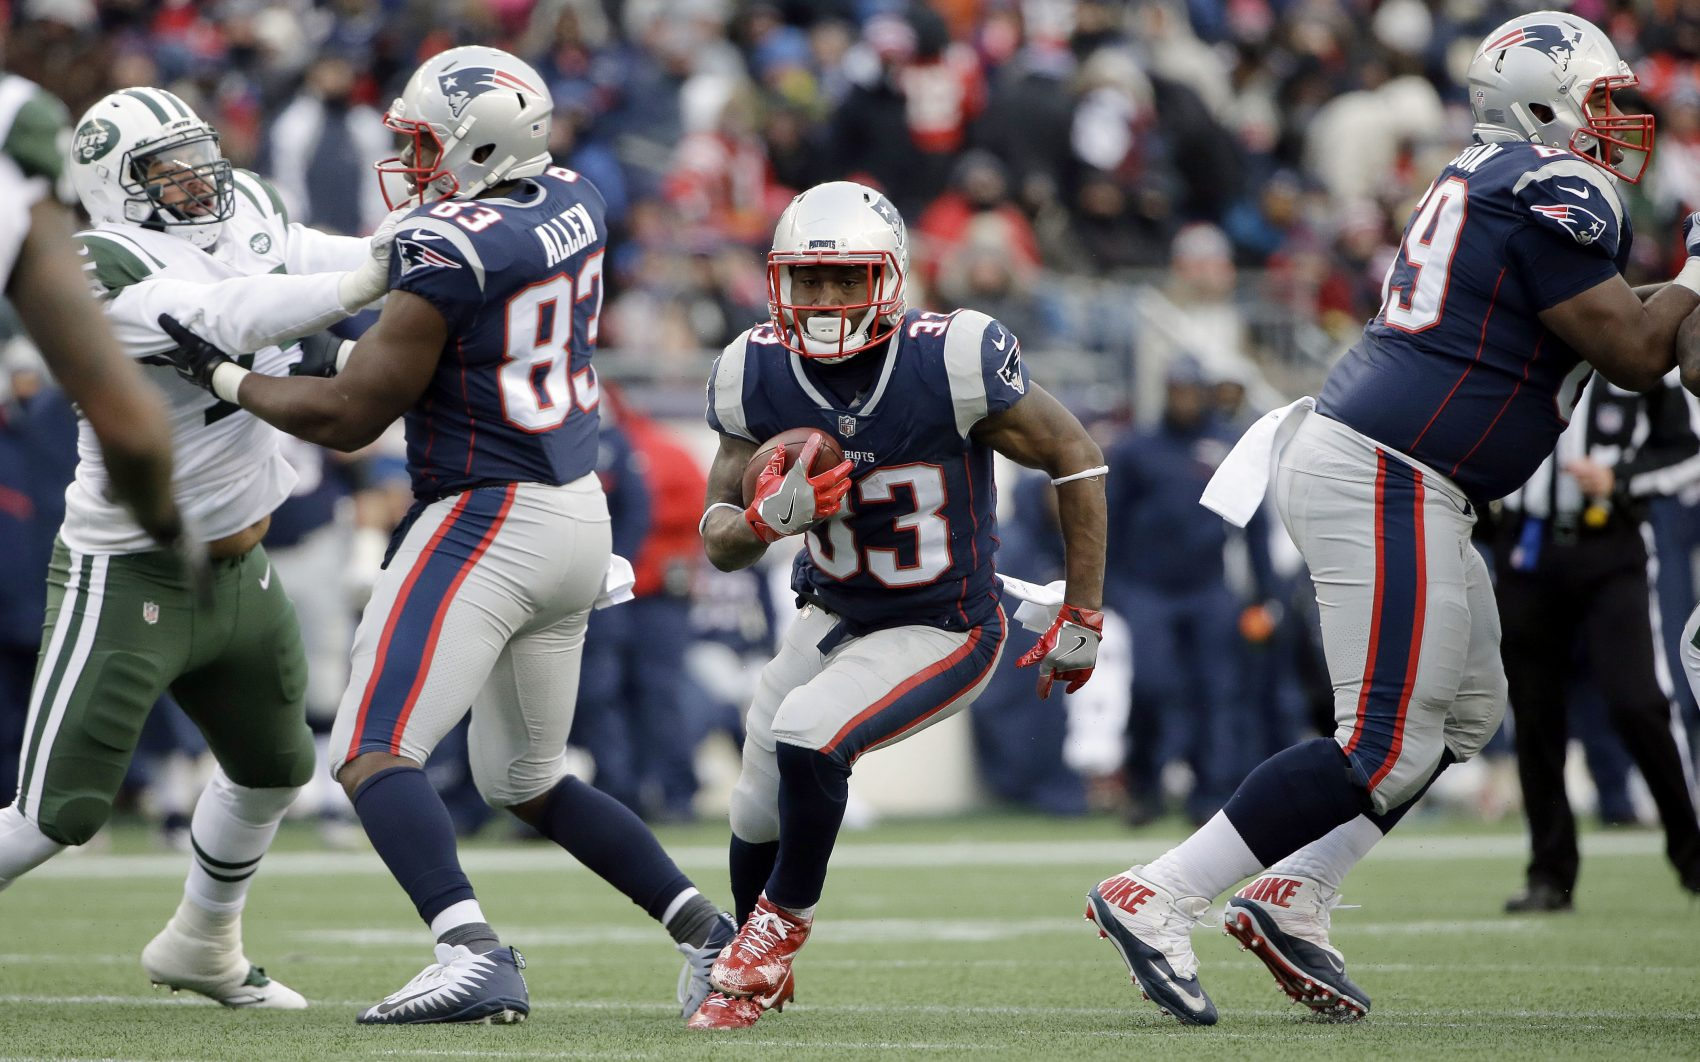 New England Patriots running back Dion Lewis (33) gains yardage against the New York Jets during the second half of an NFL football game, Sunday, Dec. 31, 2017, in Foxborough, Mass. (AP Photo/Steven Senne)